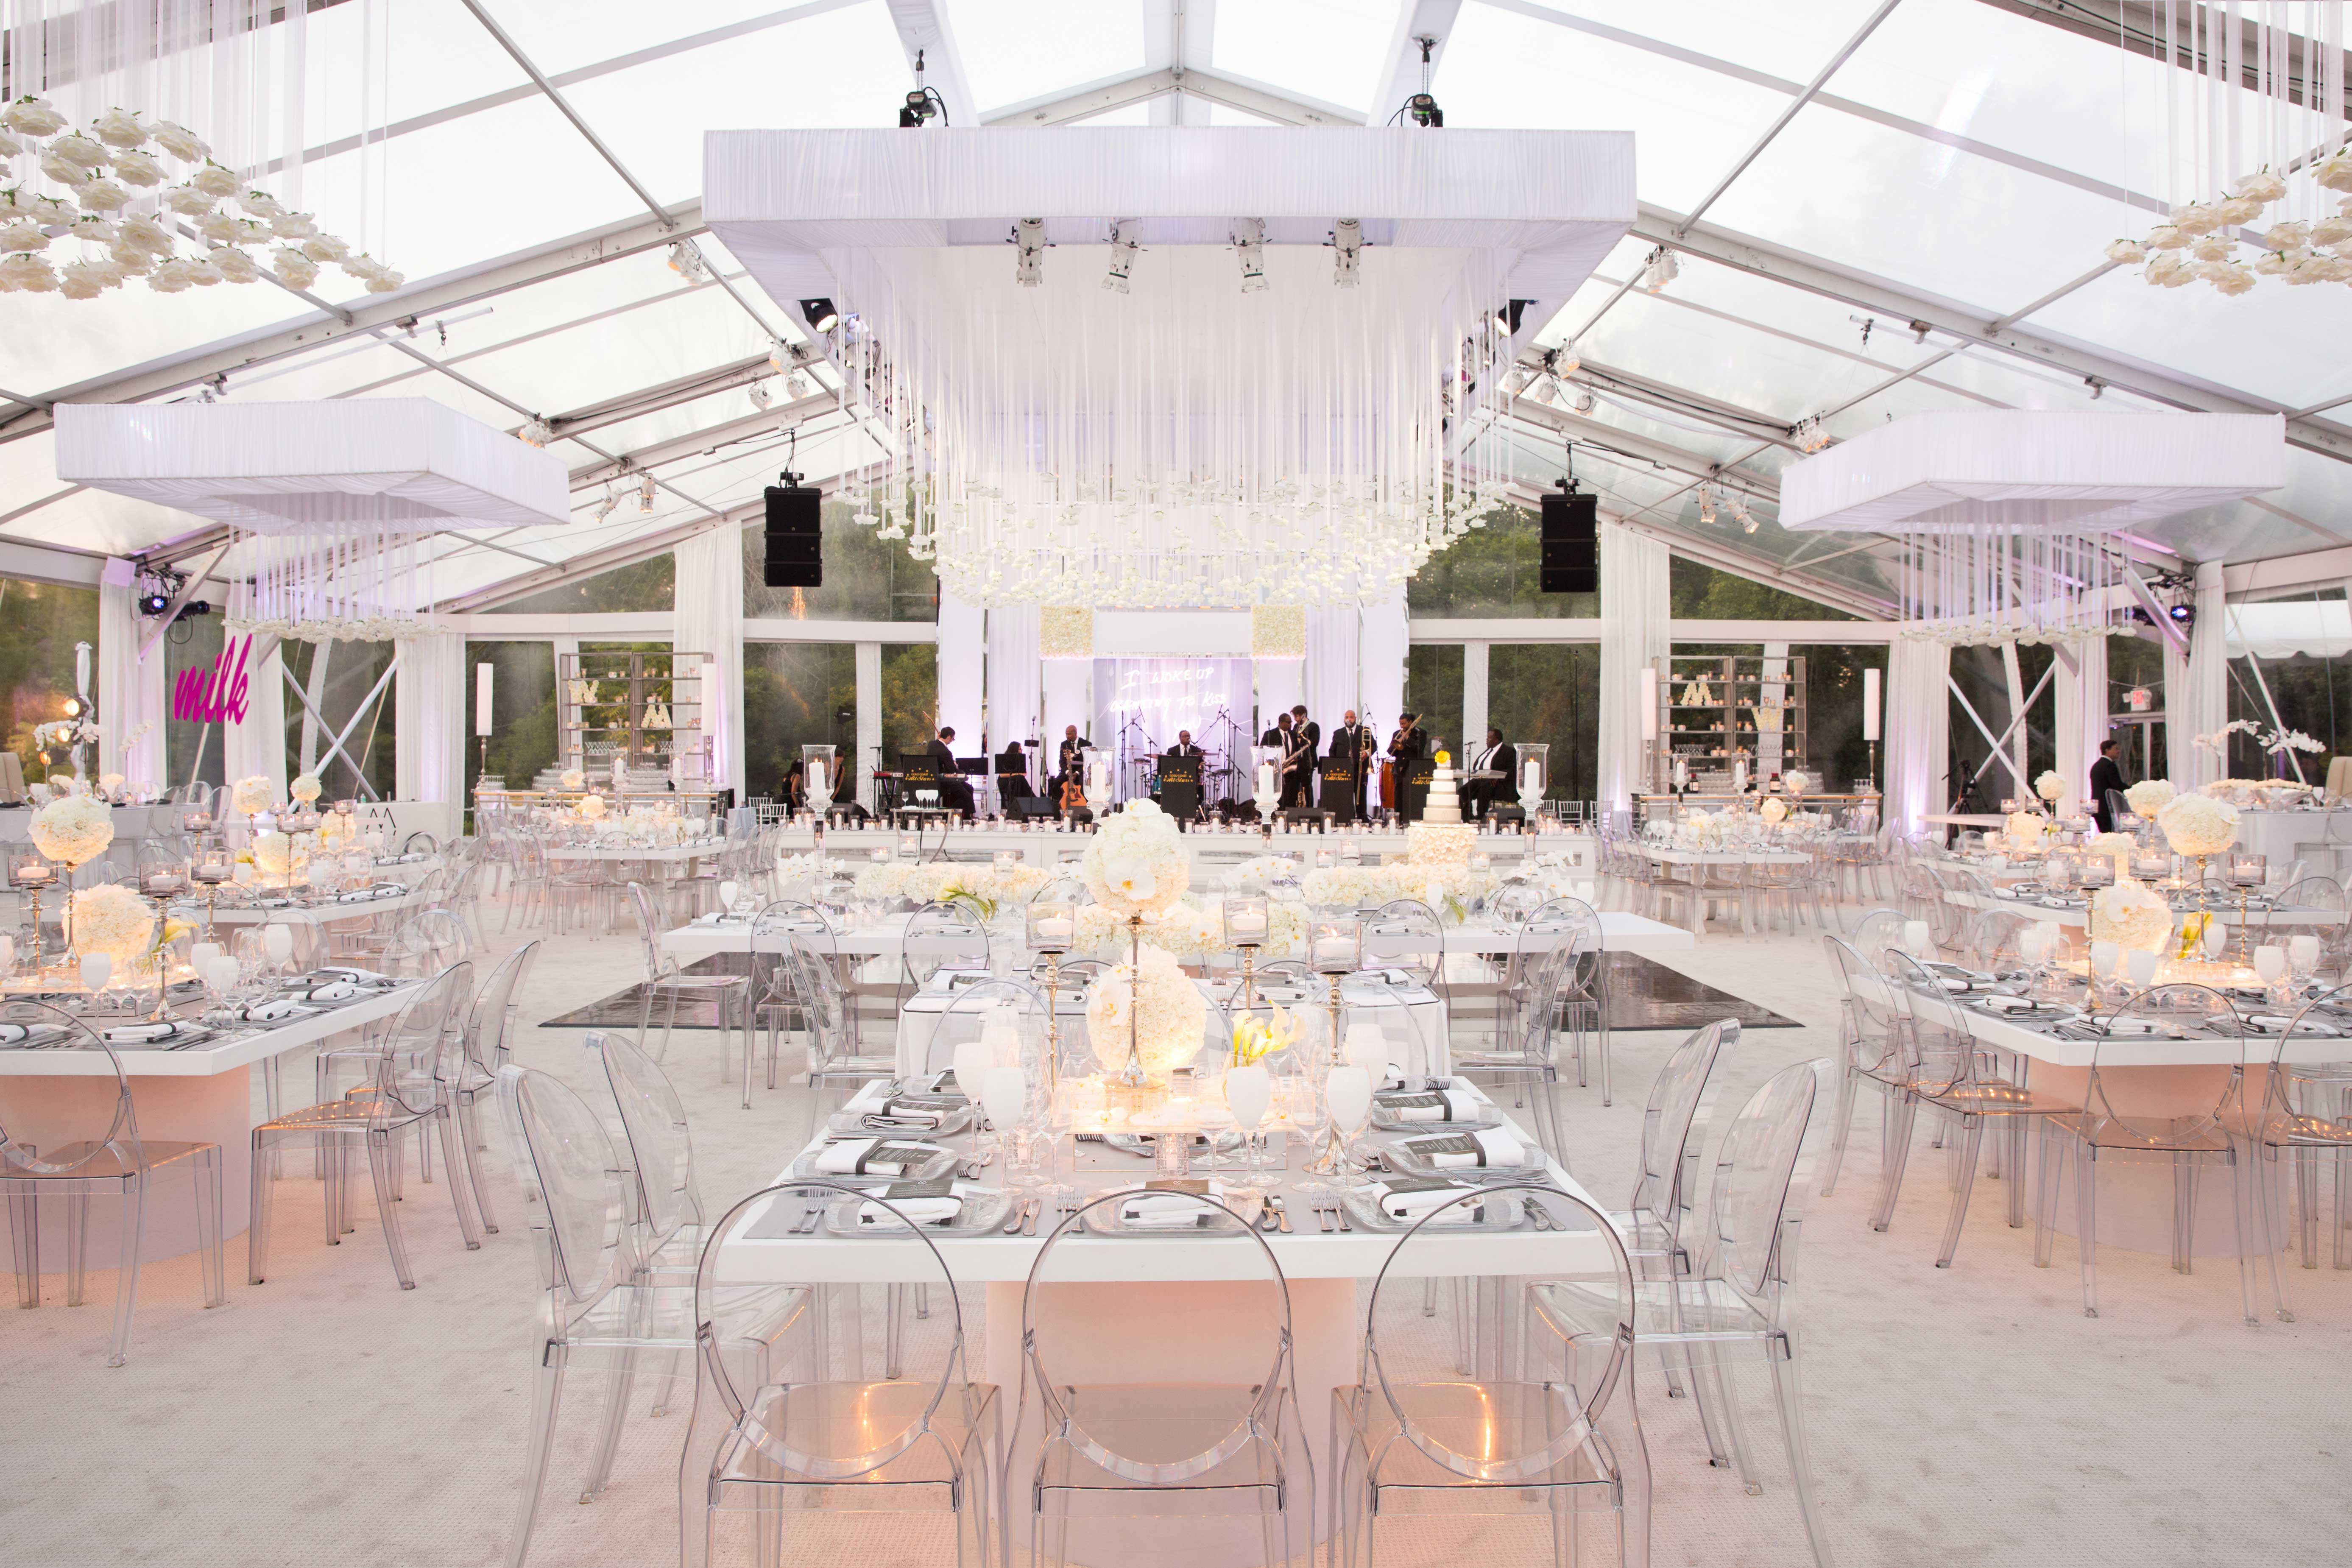 Clear Top Wedding Tent Reception With White Color Palette